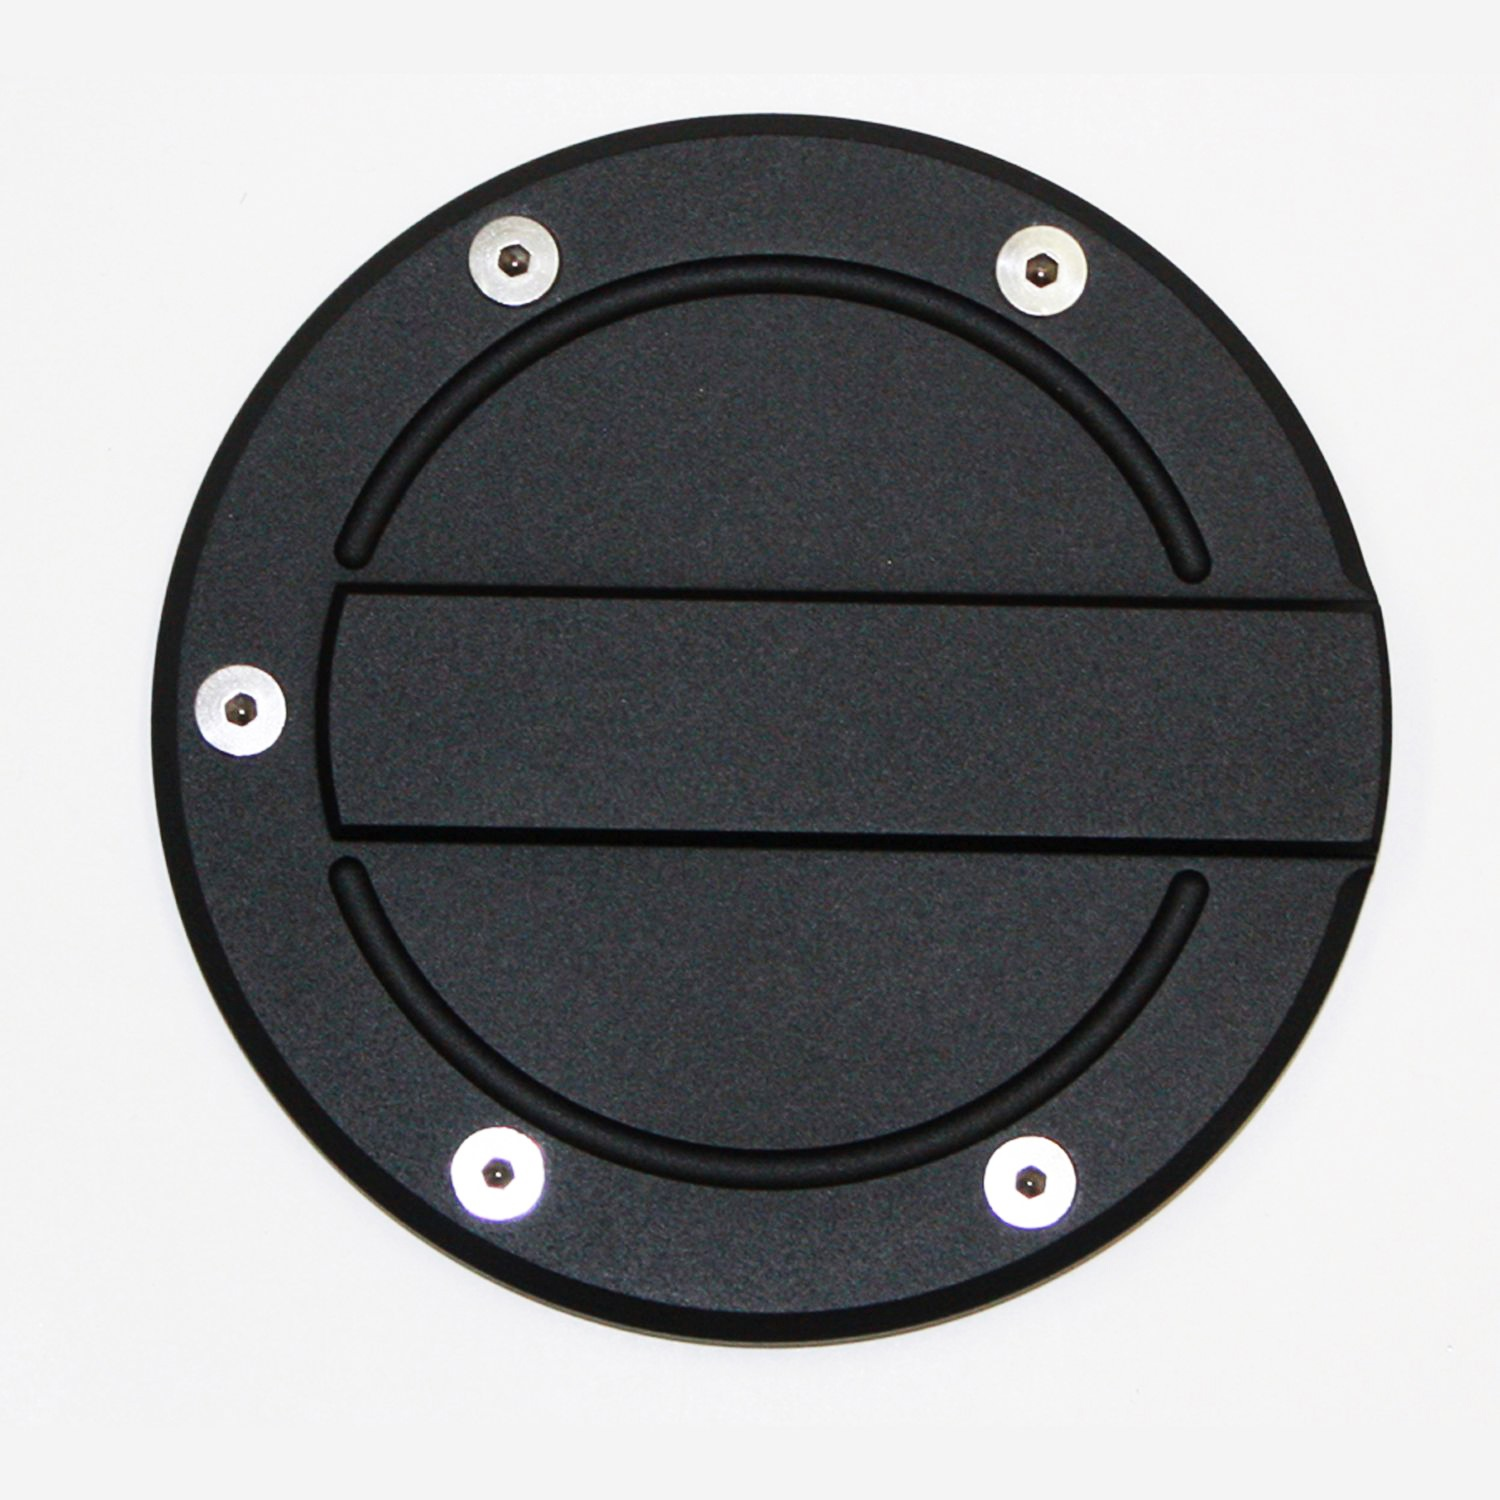 ALL SALES 6159K 09-14 F150(EXCEPT FLARESIDE) BILLET FUEL DOOR COVER RACE STYLE - FLAT BLACK RING